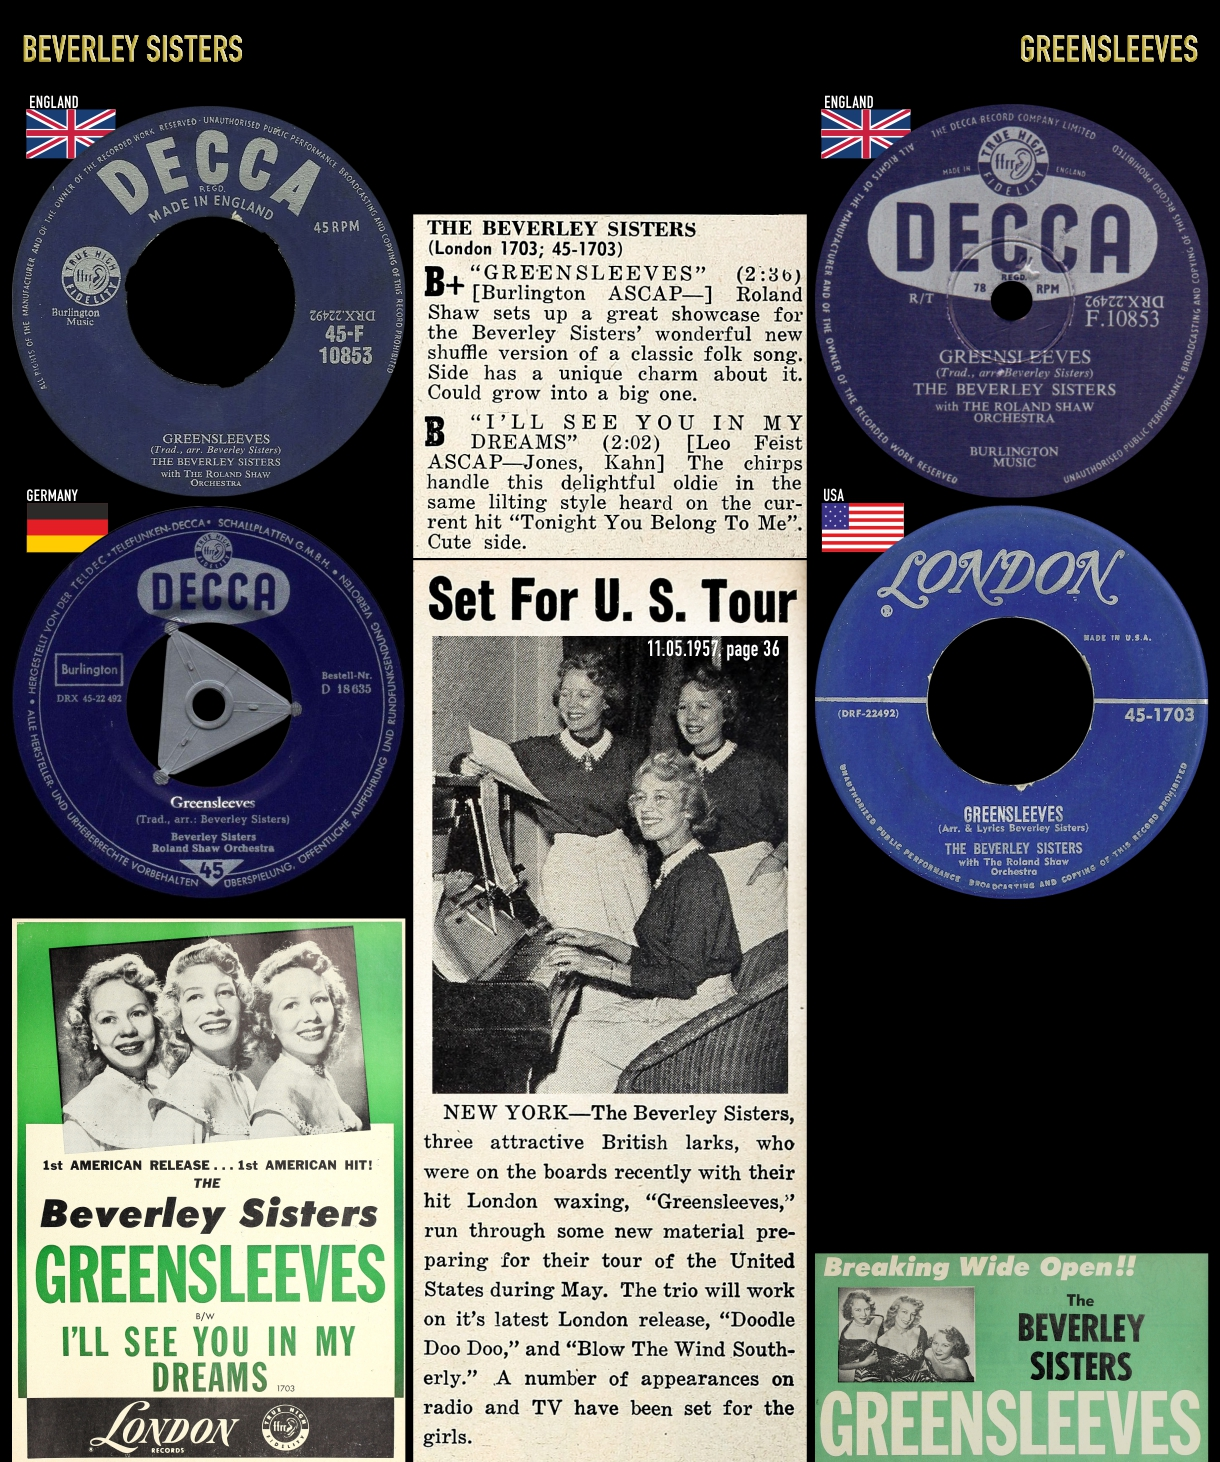 561222_Beverley Sisters_Greensleeves